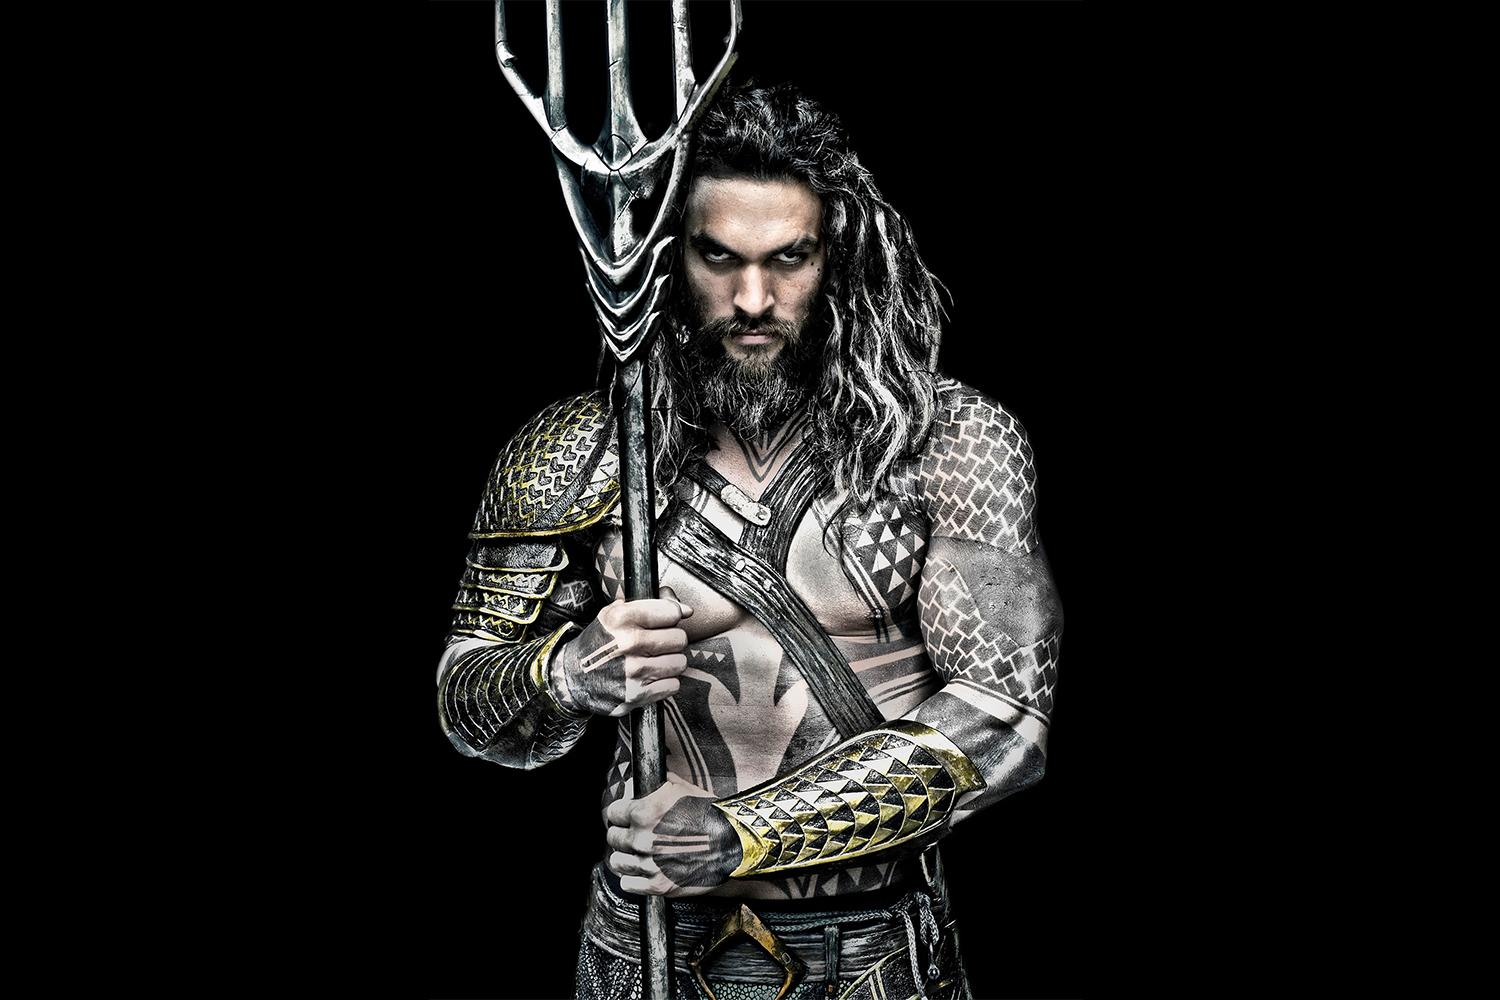 Aquaman Backgrounds on Wallpapers Vista